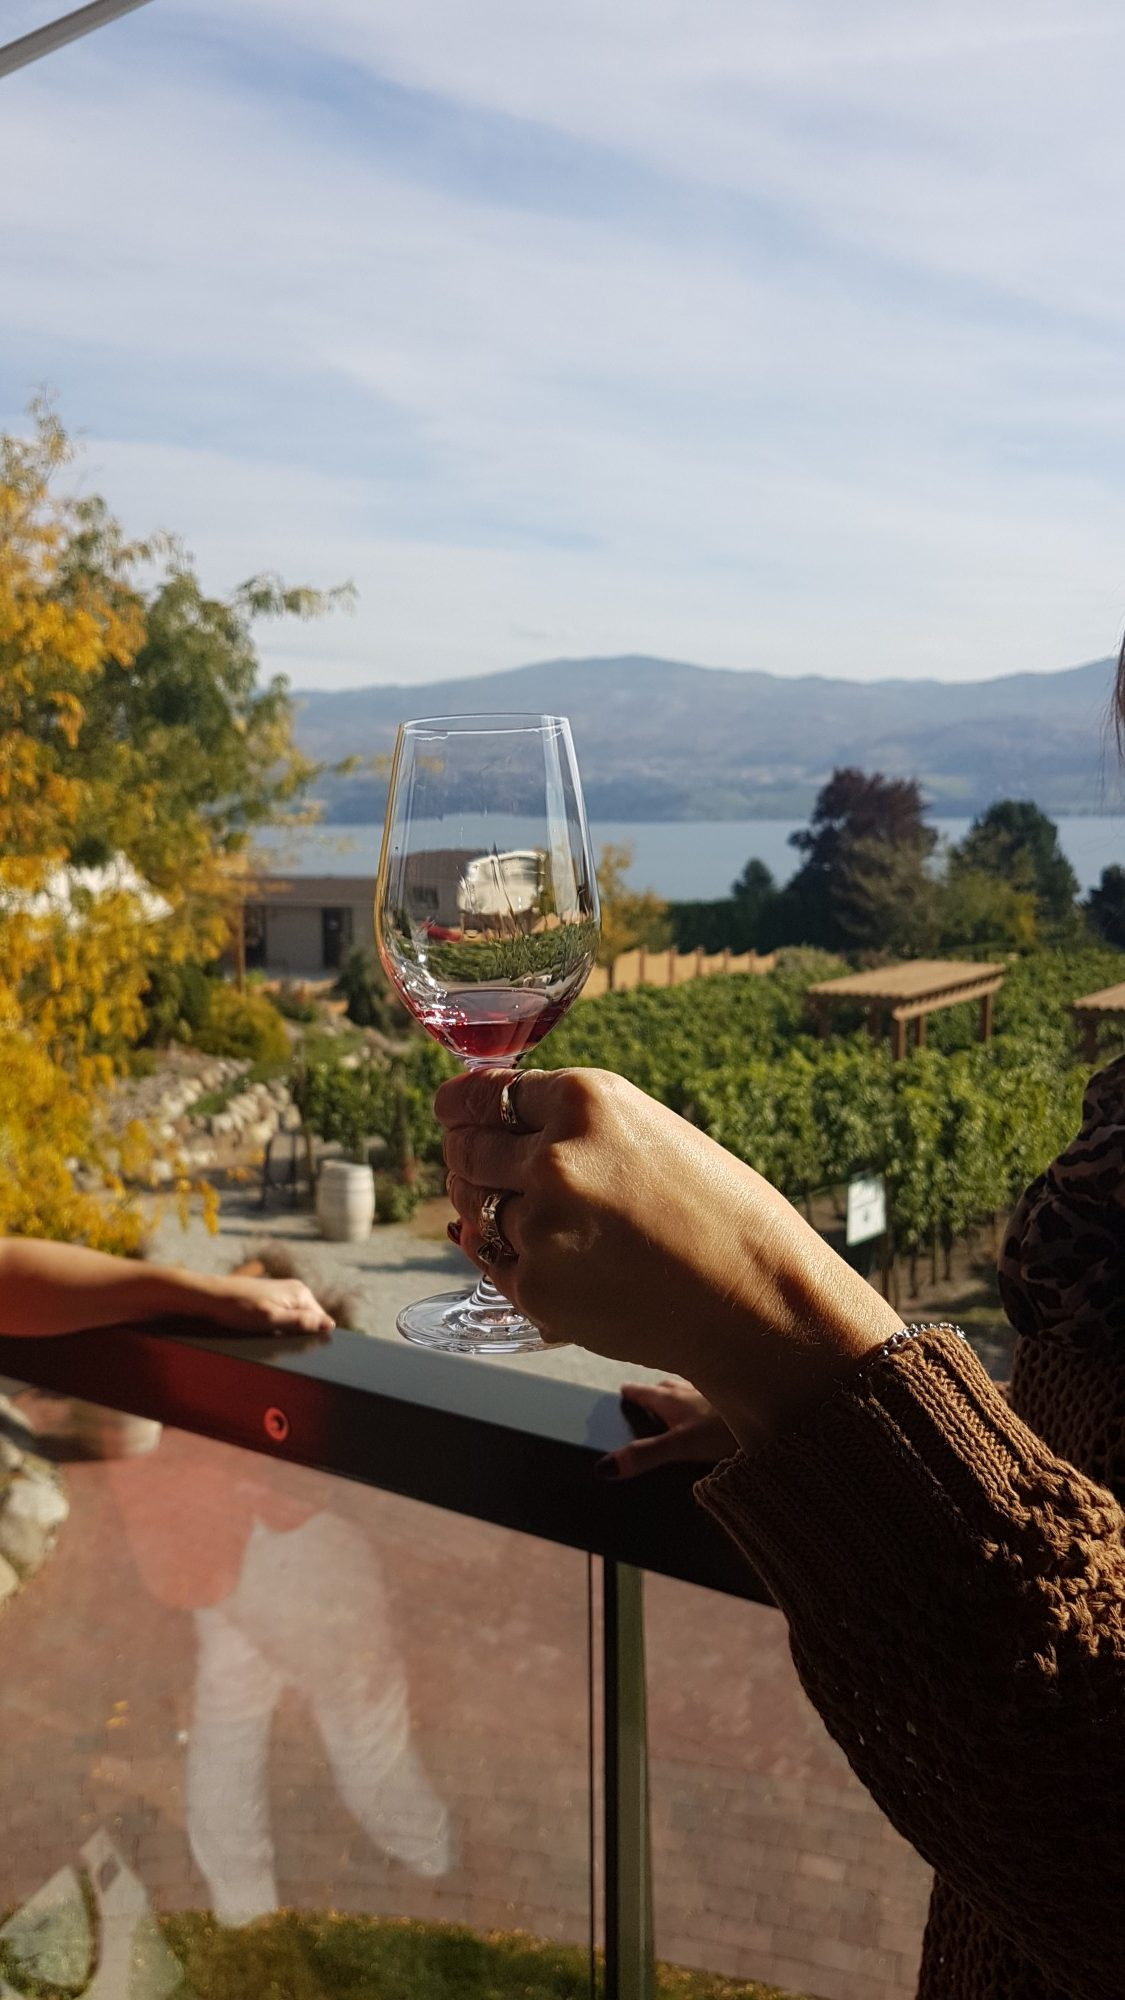 helicopter tours kelowna with Westside Bench Kelowna Wine Tourglass At Qg on Westside Bench Kelowna Wine Tourglass At Qg likewise Hanger Blog 3 likewise Tours furthermore Charter flights cambridge bay nu additionally Charter flights gjoa haven nu.